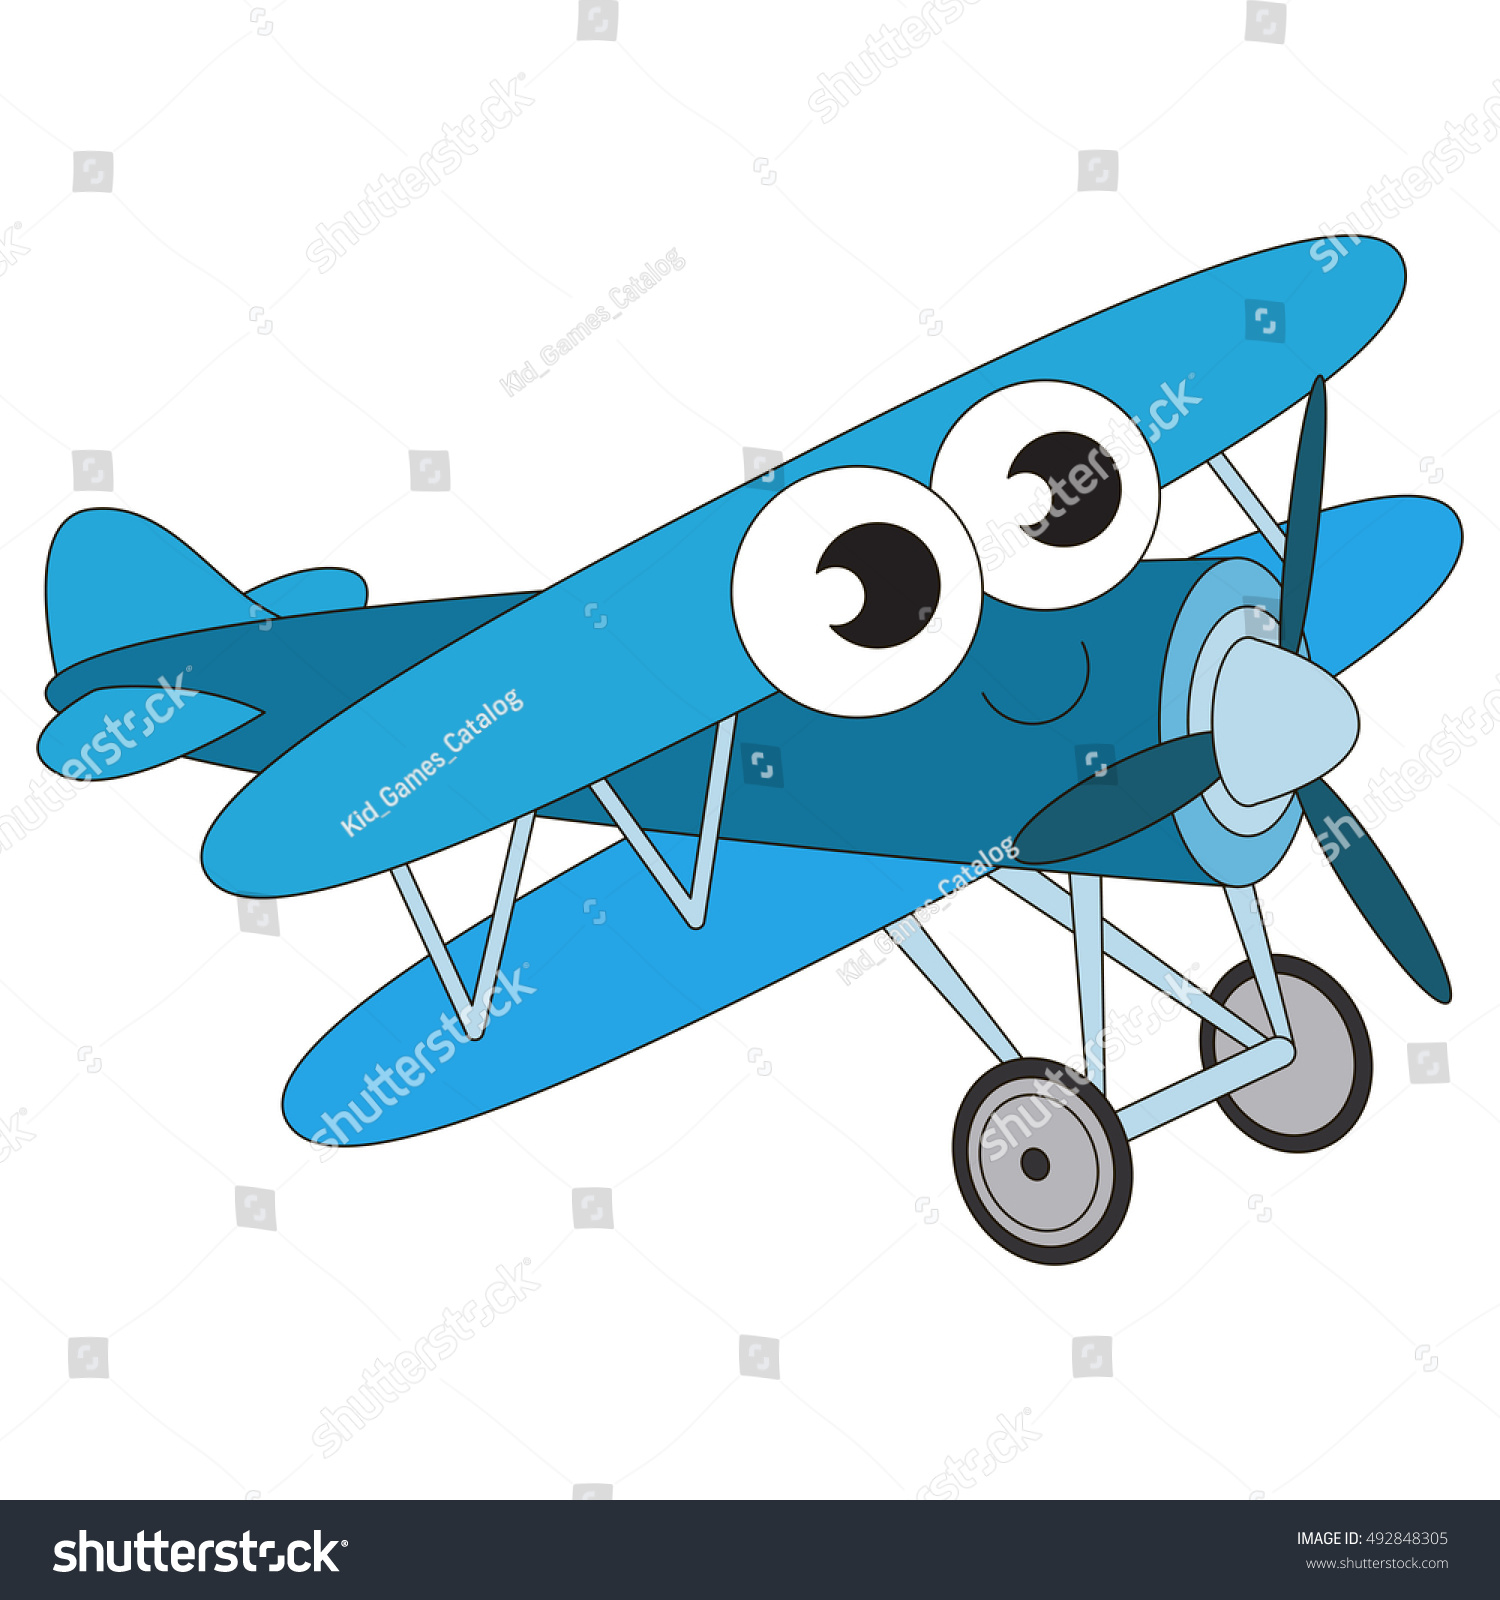 blue biplane cartoon outlined flying vehicle stock vector